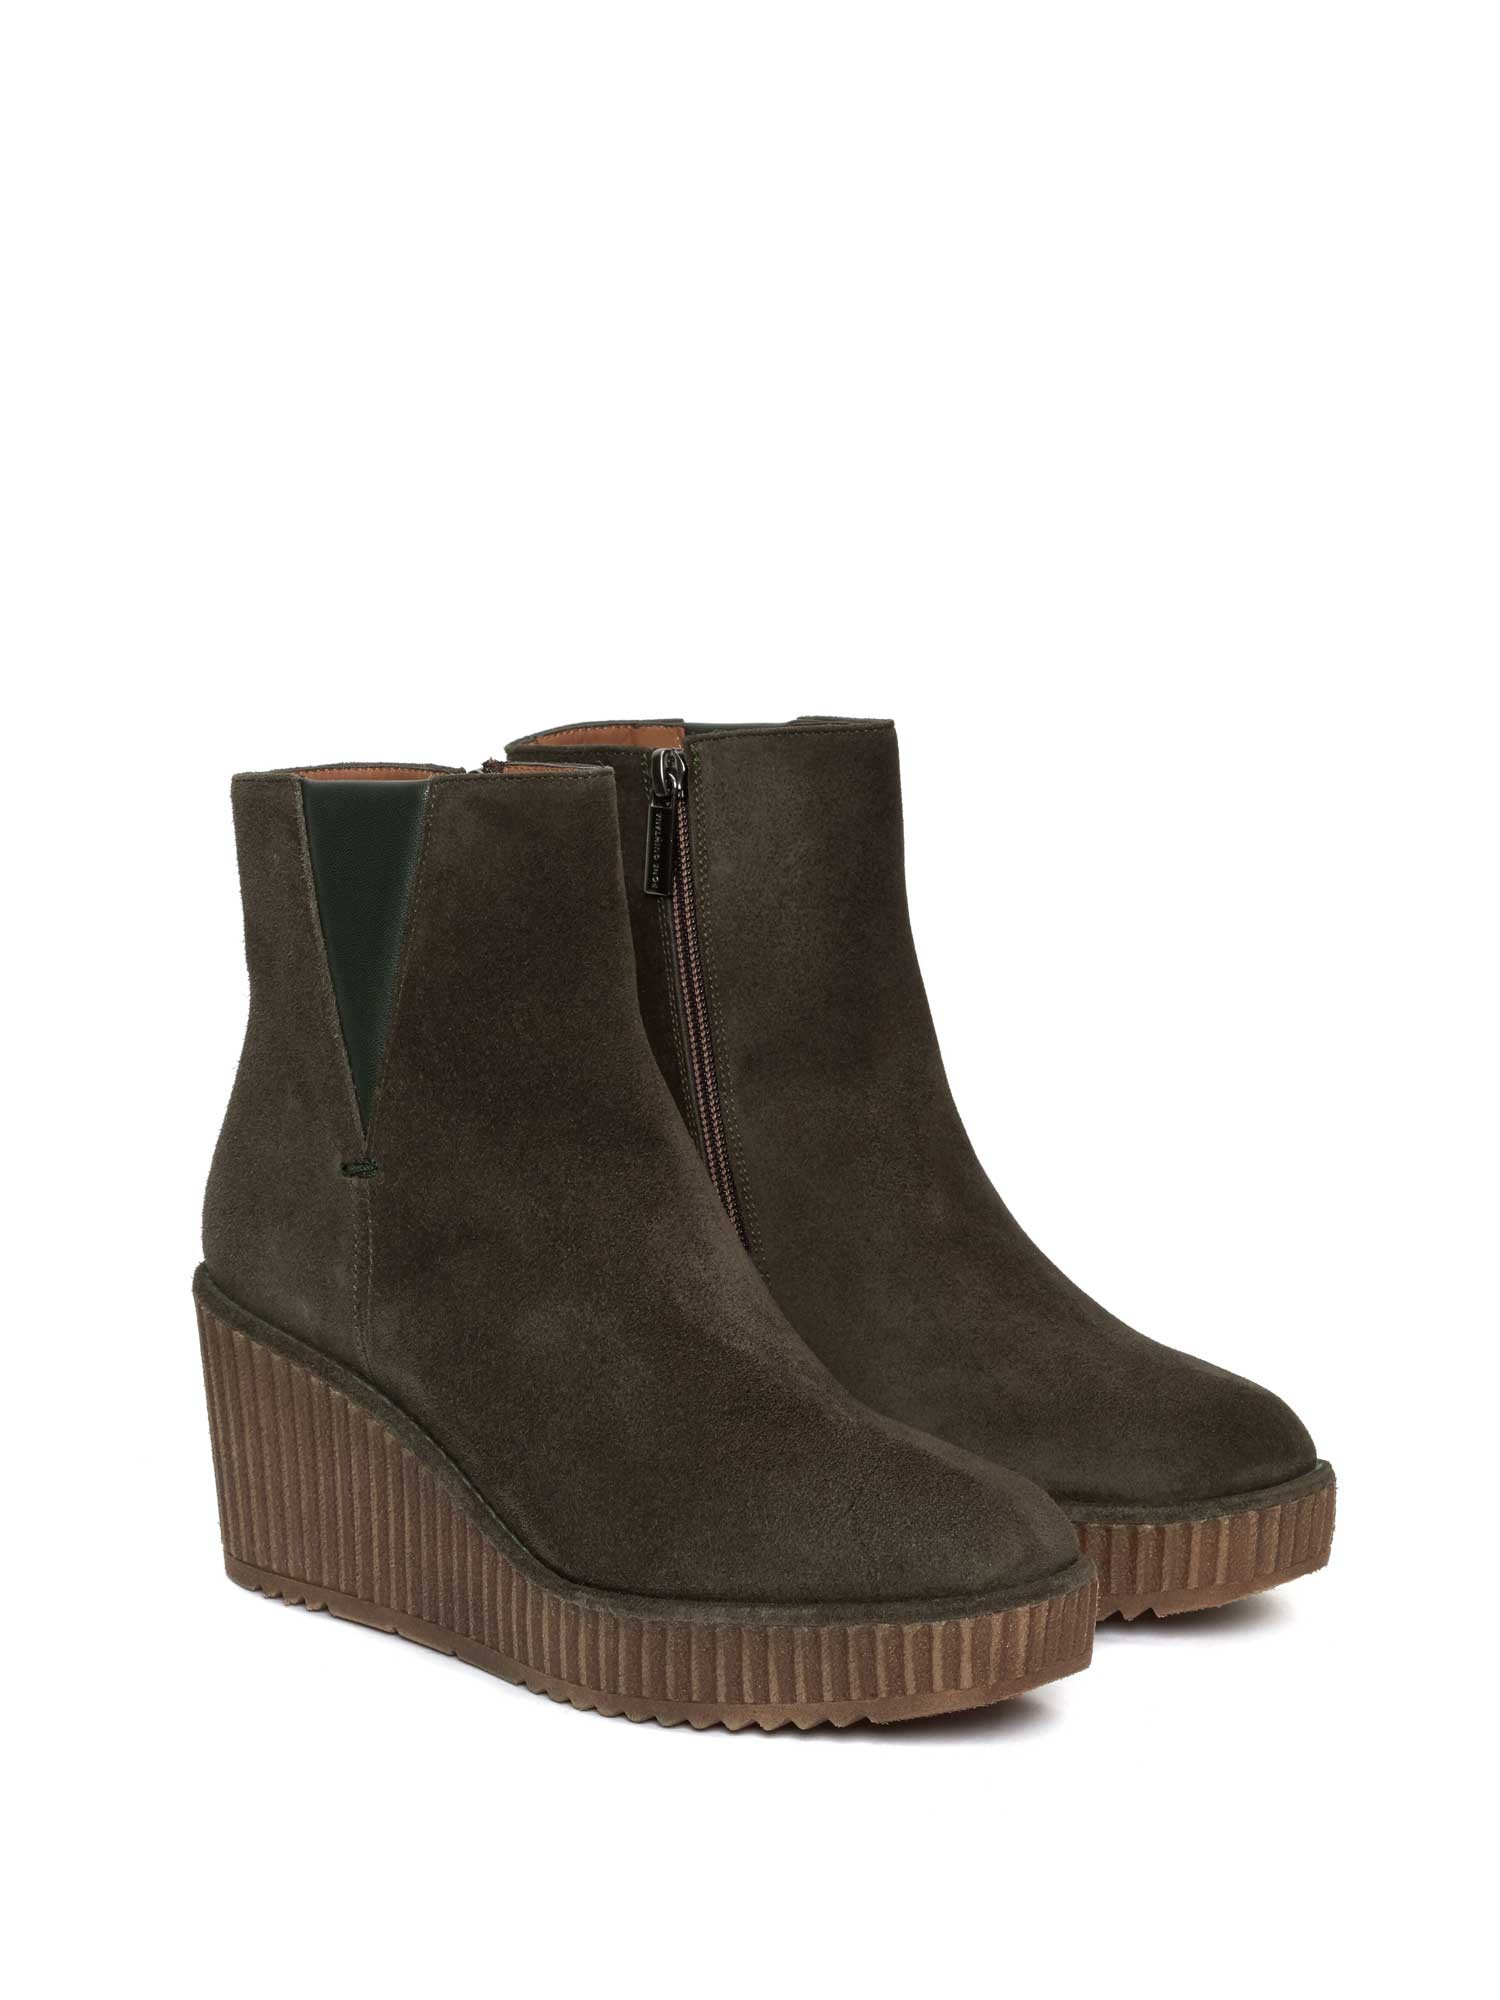 CLAUDI VELOUR MUSGO ANKLE BOOT